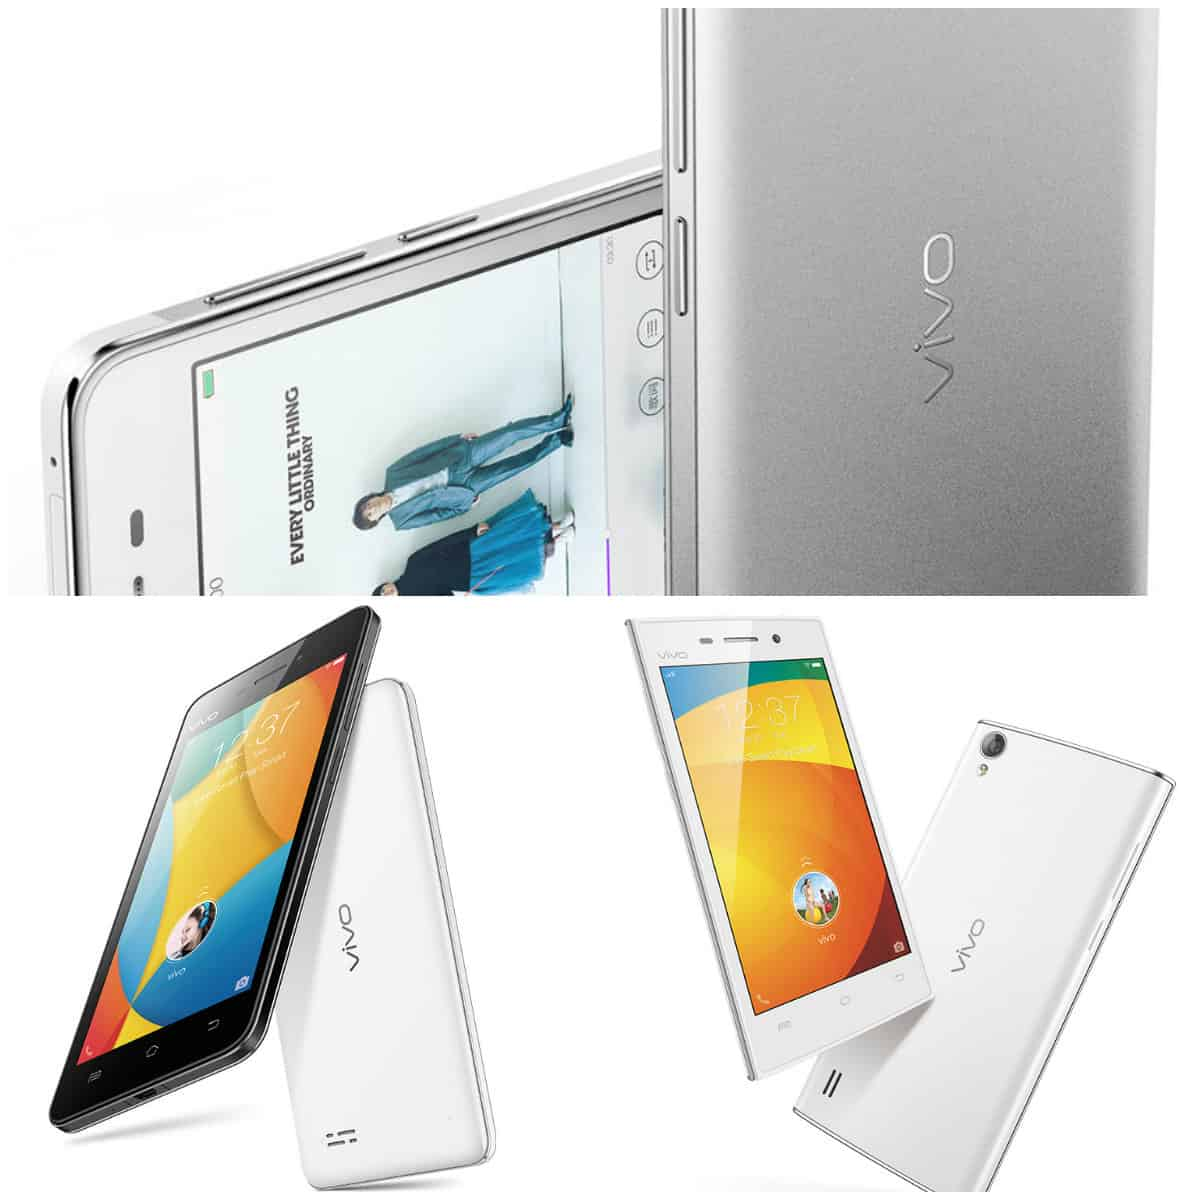 Vivo India three new devices_1